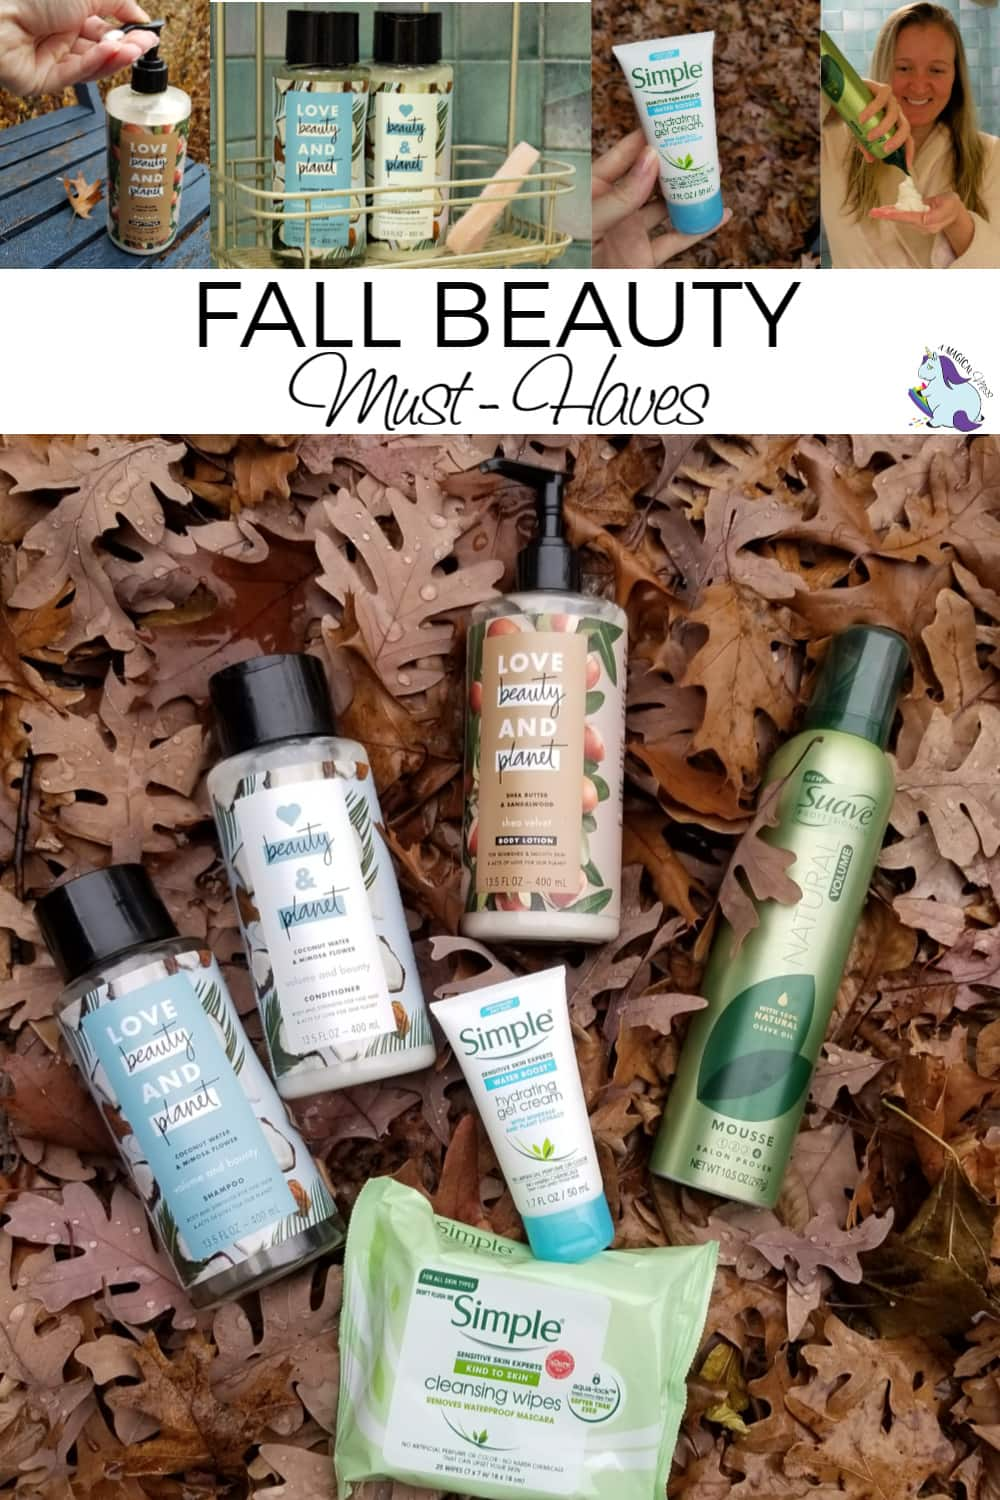 Changes in weather mean the beauty routine needs to adapt. These are her fall favorites for hair and skin--and she got them all at her grocery store! #TakeANewLook18 #beauty #bathbody #skincare